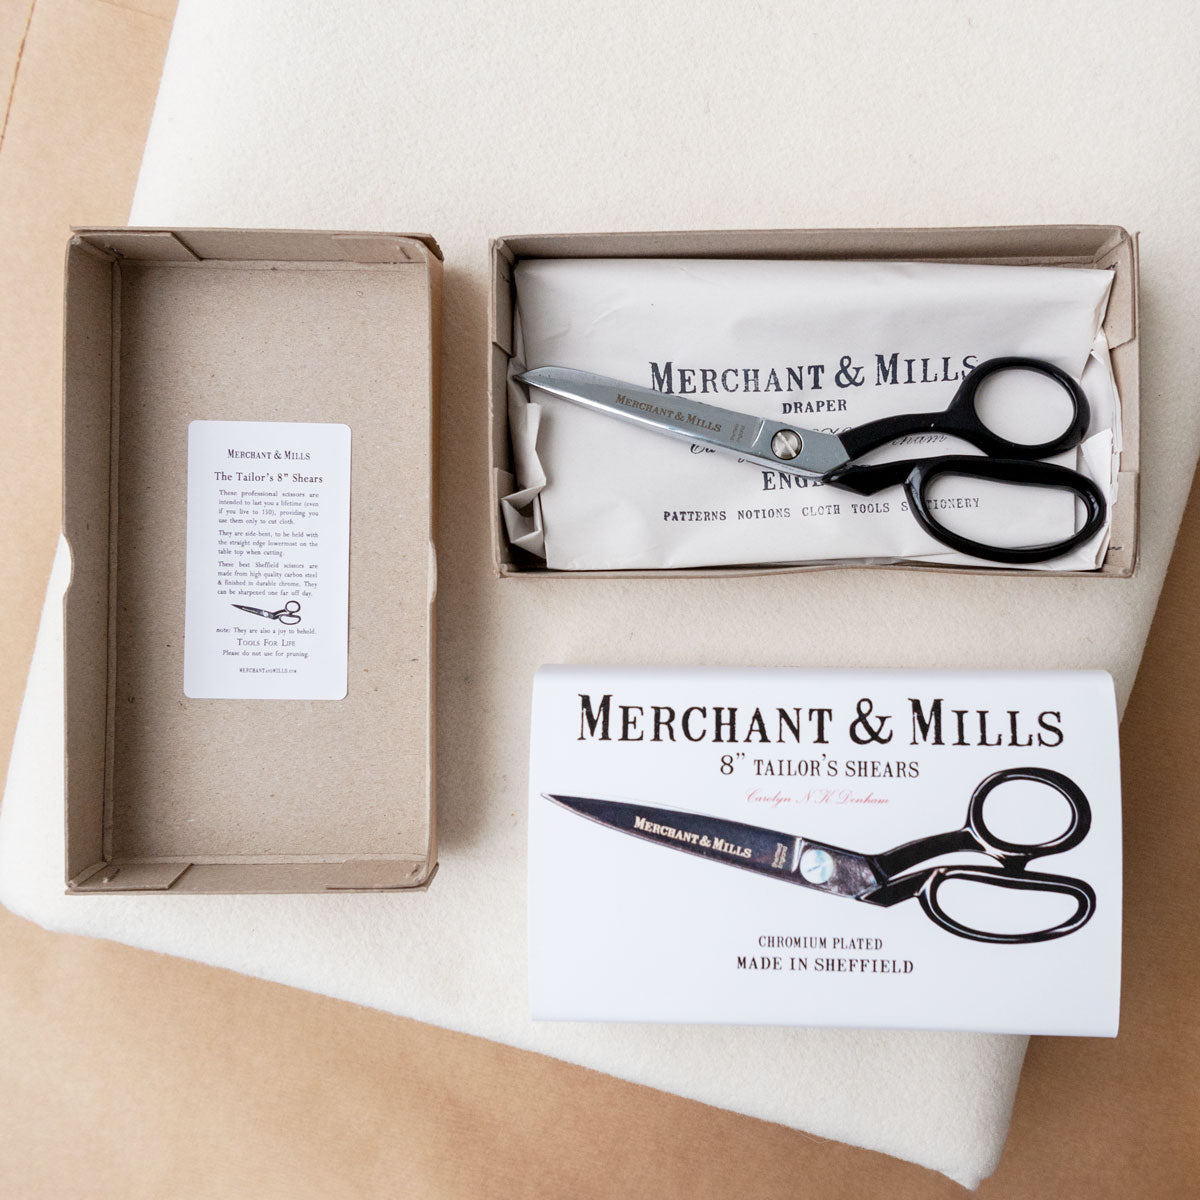 Merchant & Mills Tailors Scissors